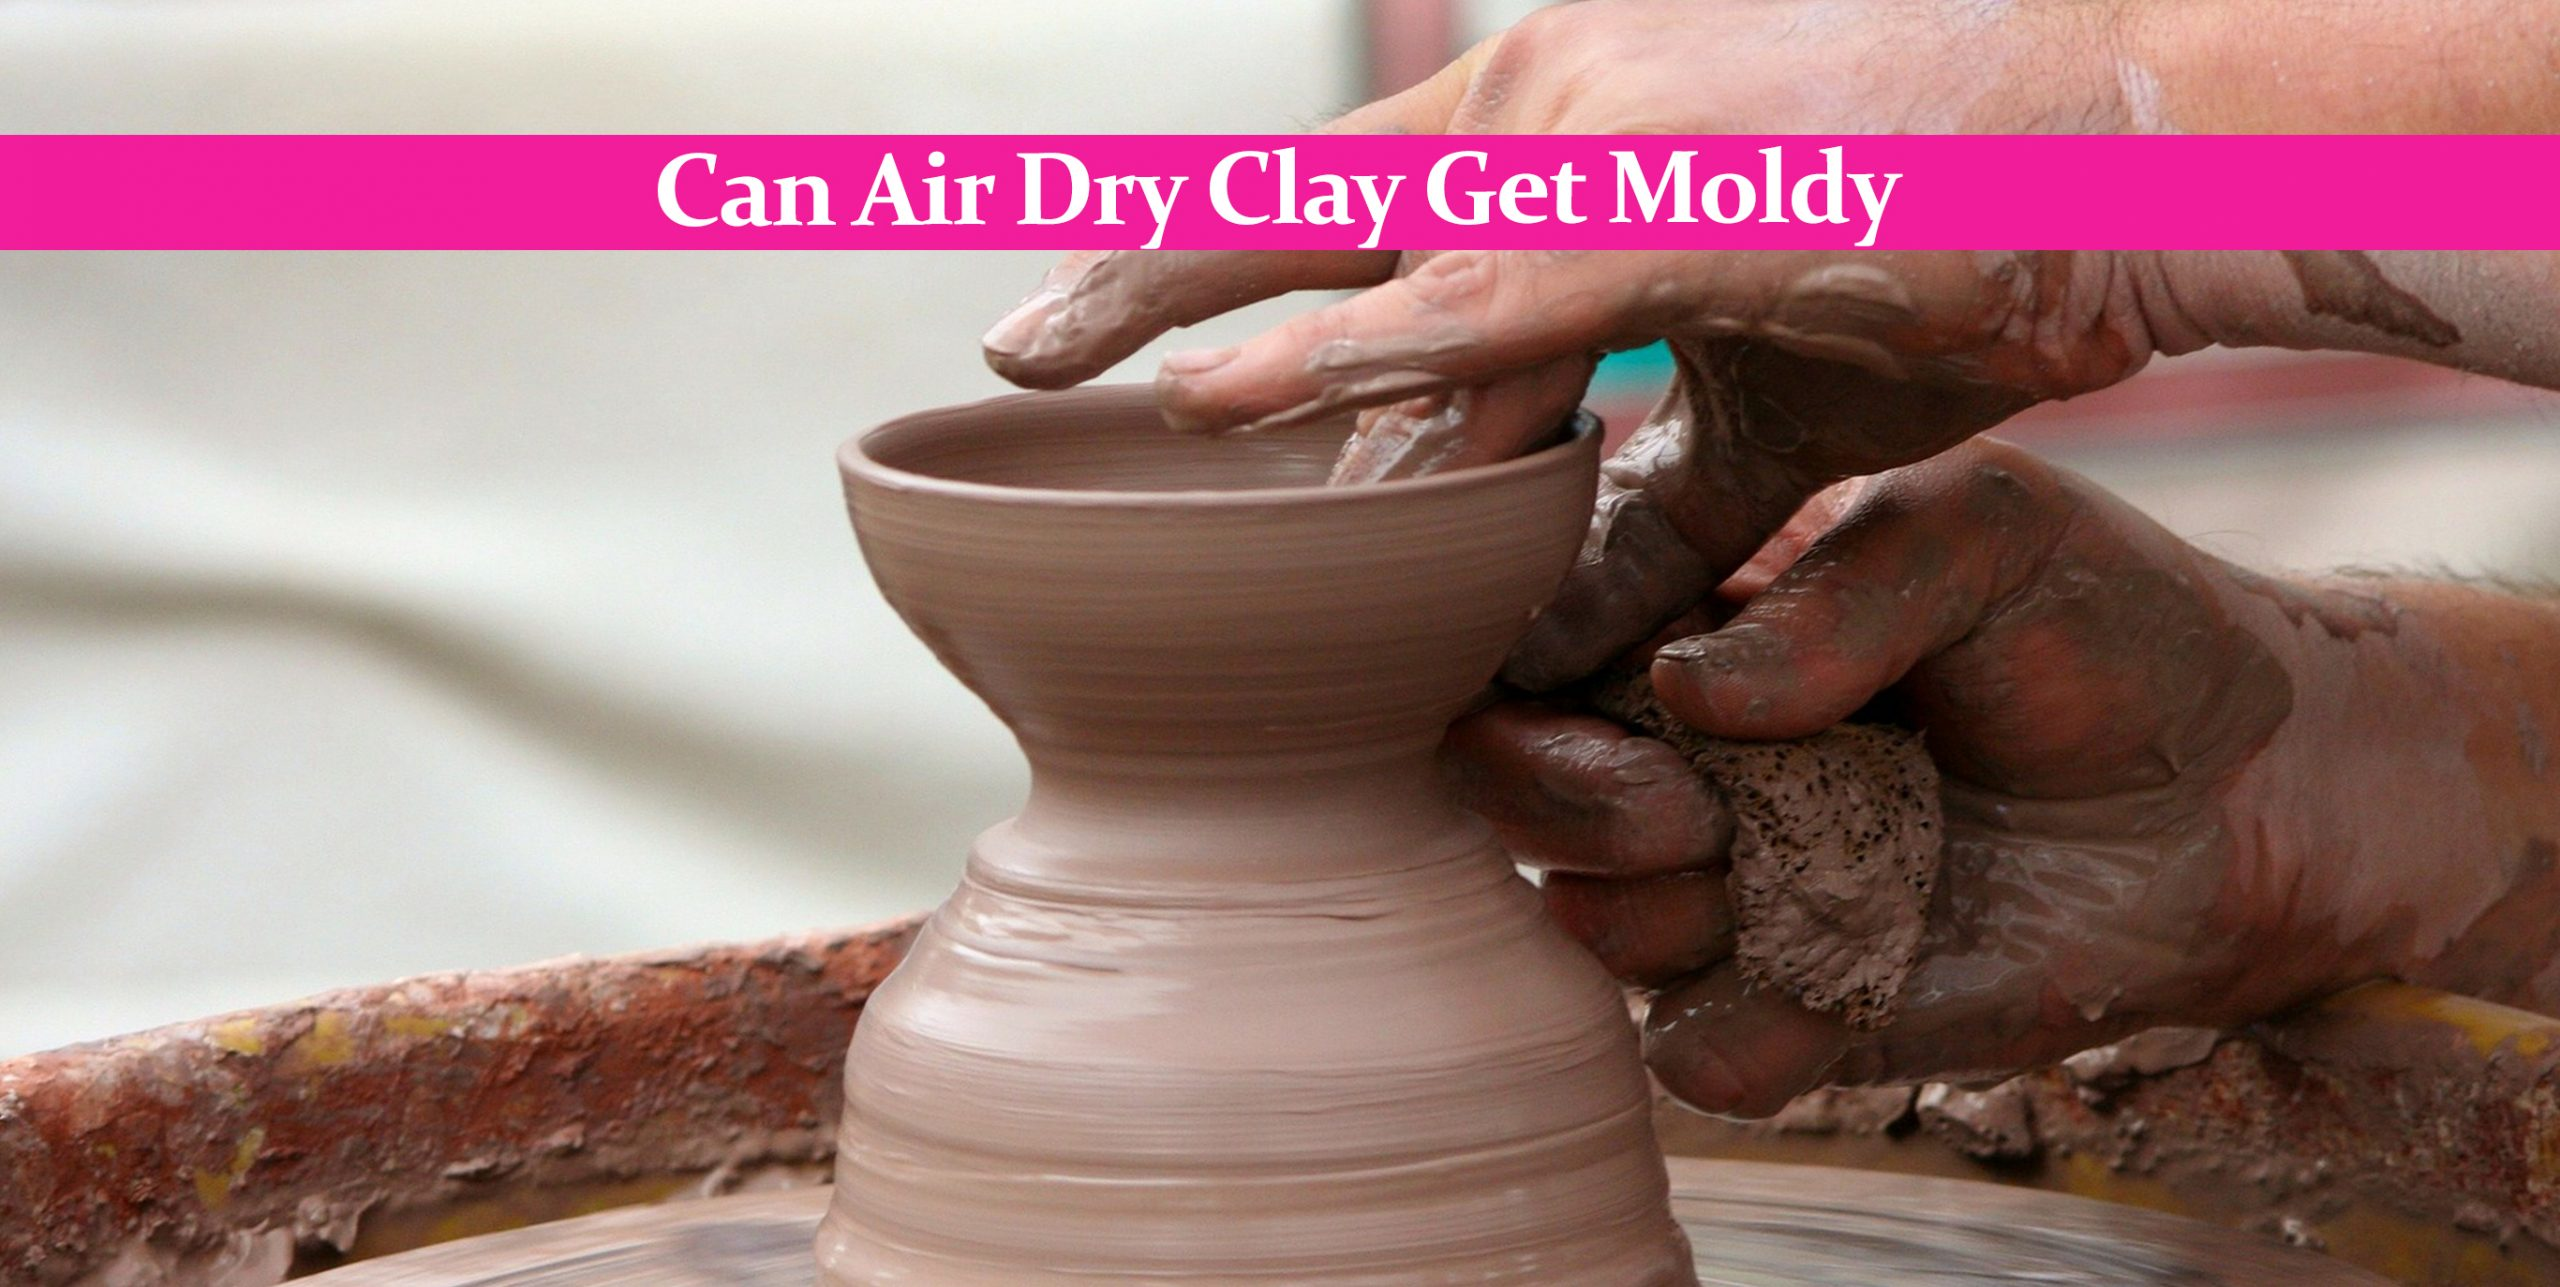 Can Air Dry Clay Get Moldy